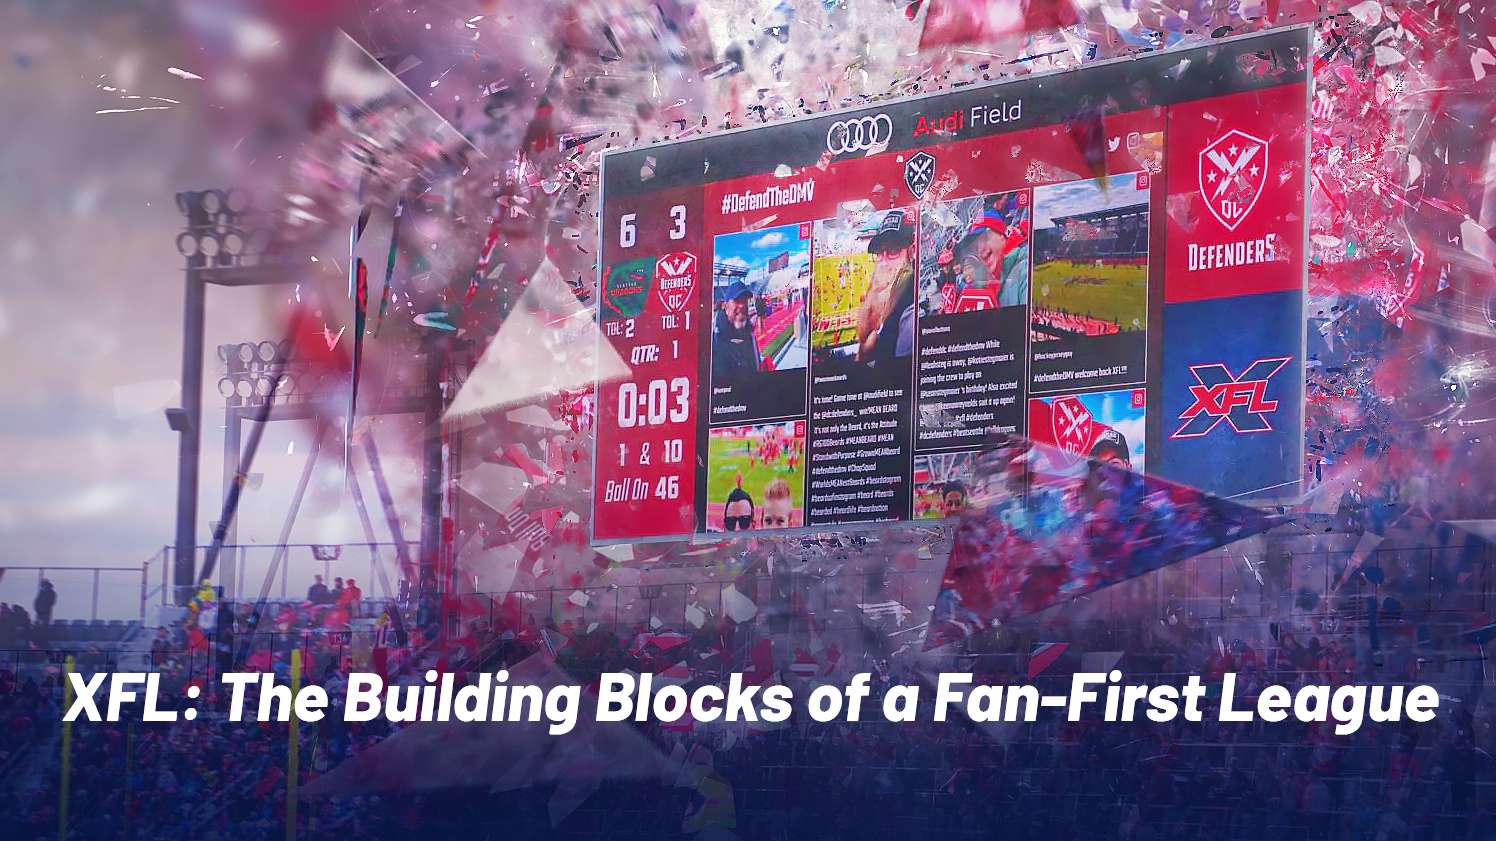 XFL: The Building Blocks of a Fan-First League